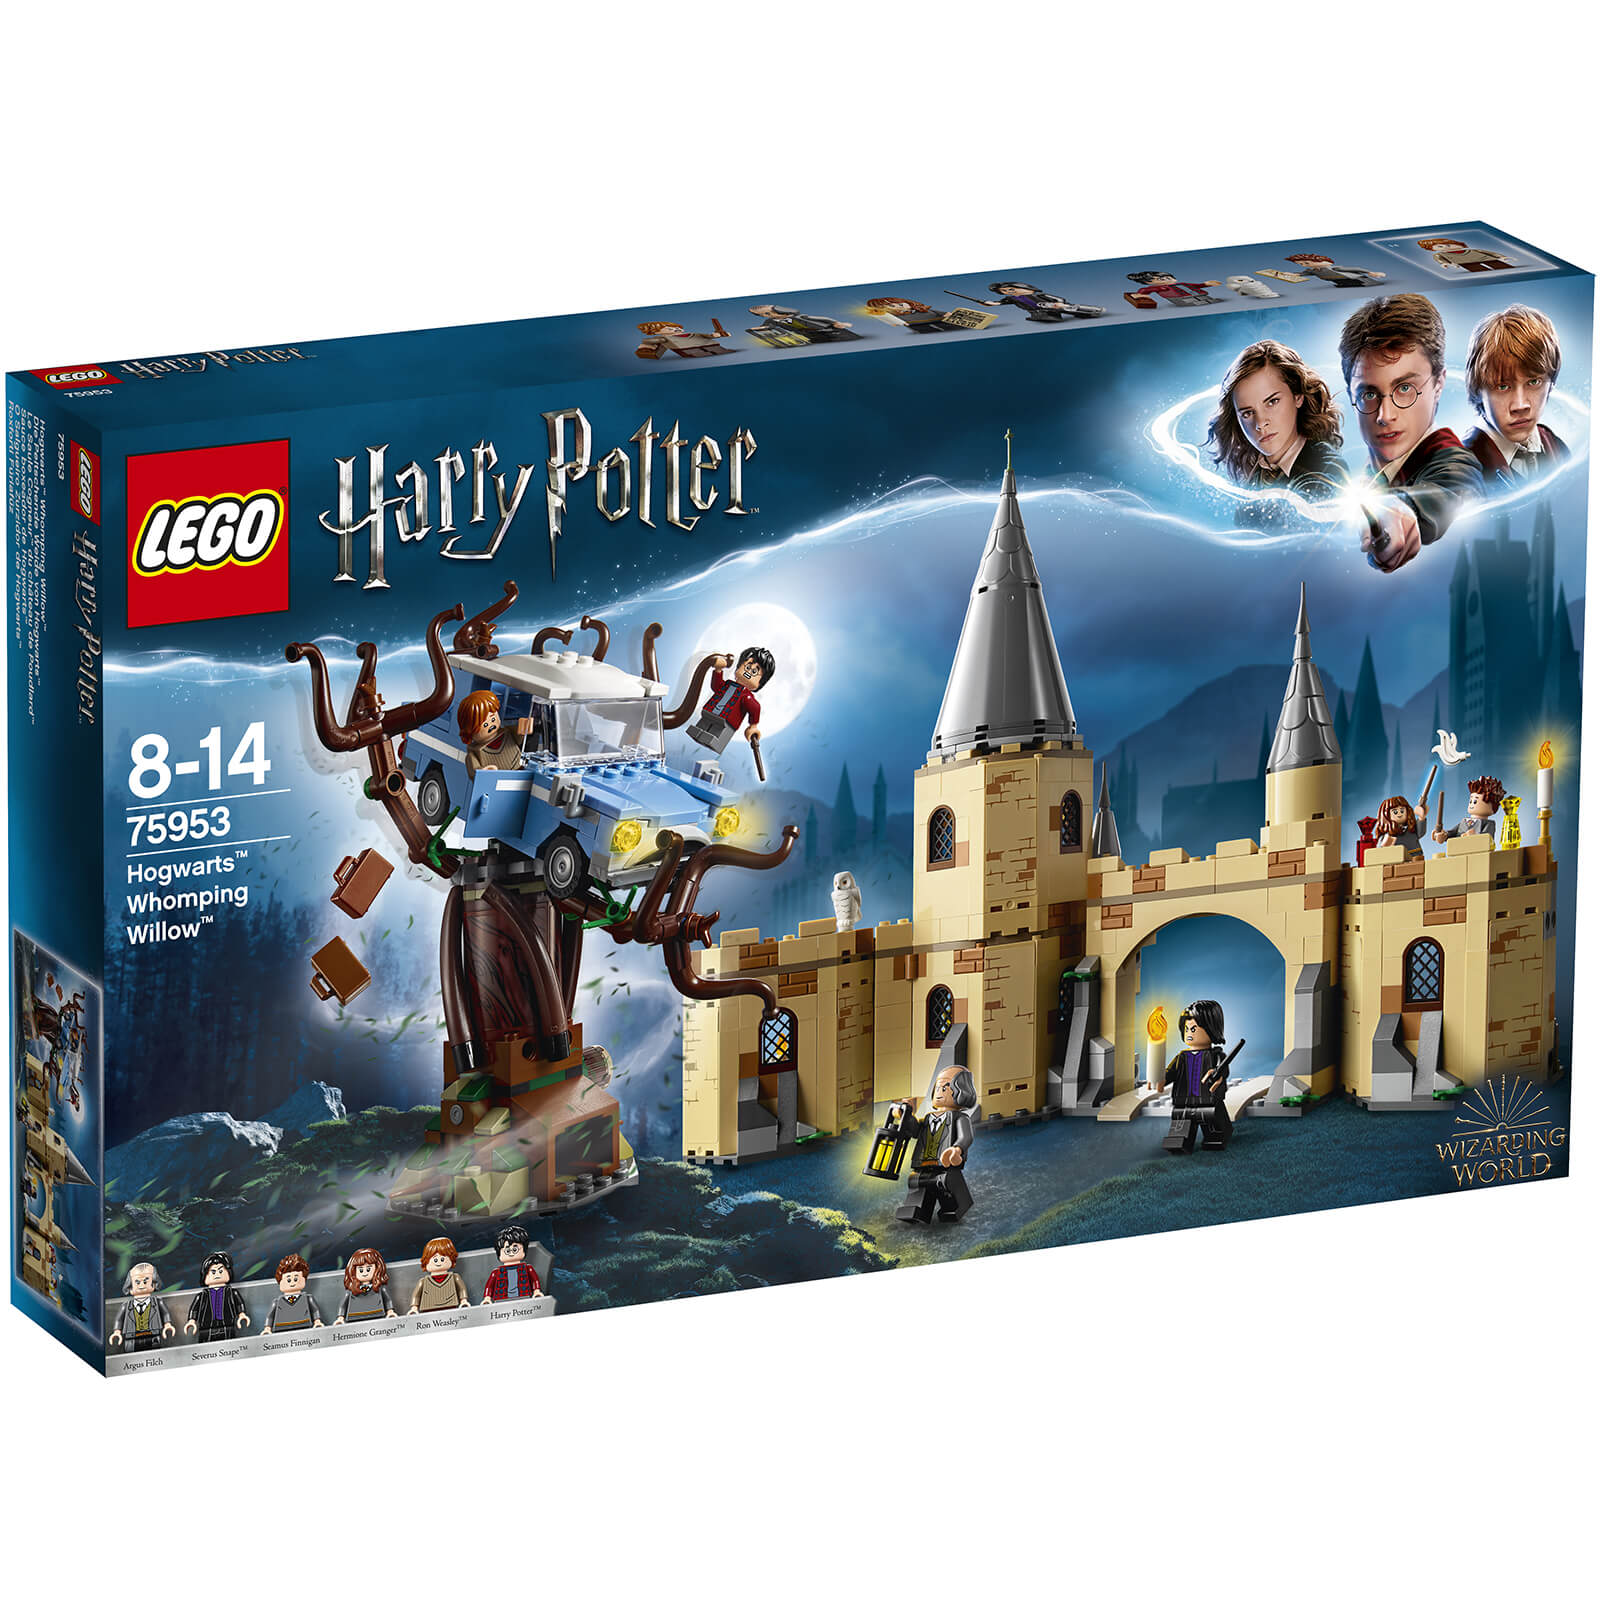 Comprar Libros Harry Potter Baratos Lego Harry Potter Hogwarts Whomping Willow 75953